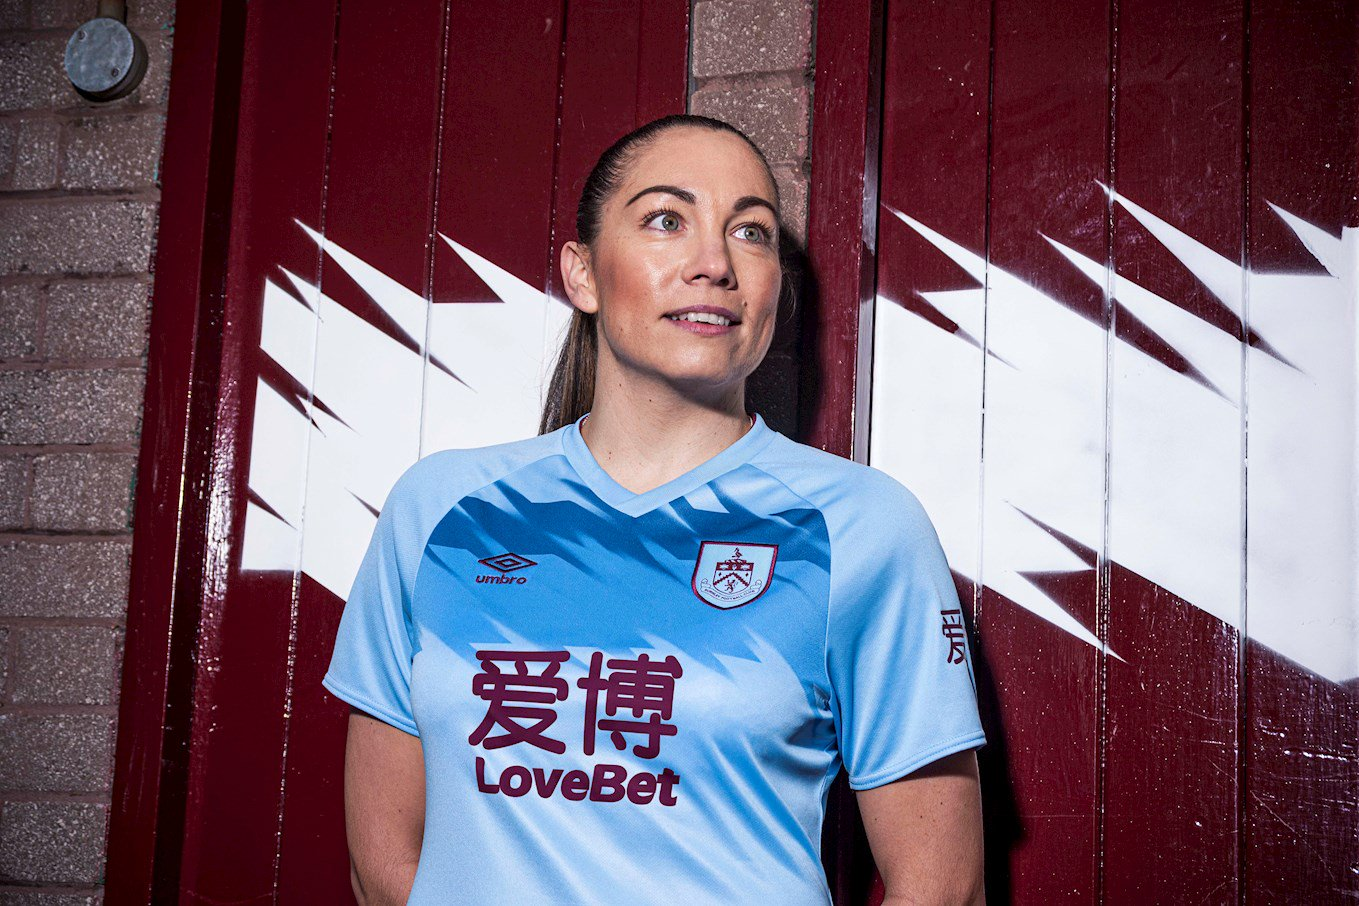 Burnley 2019-20 Umbro Away Kit | 19/20 Kits | Football ...